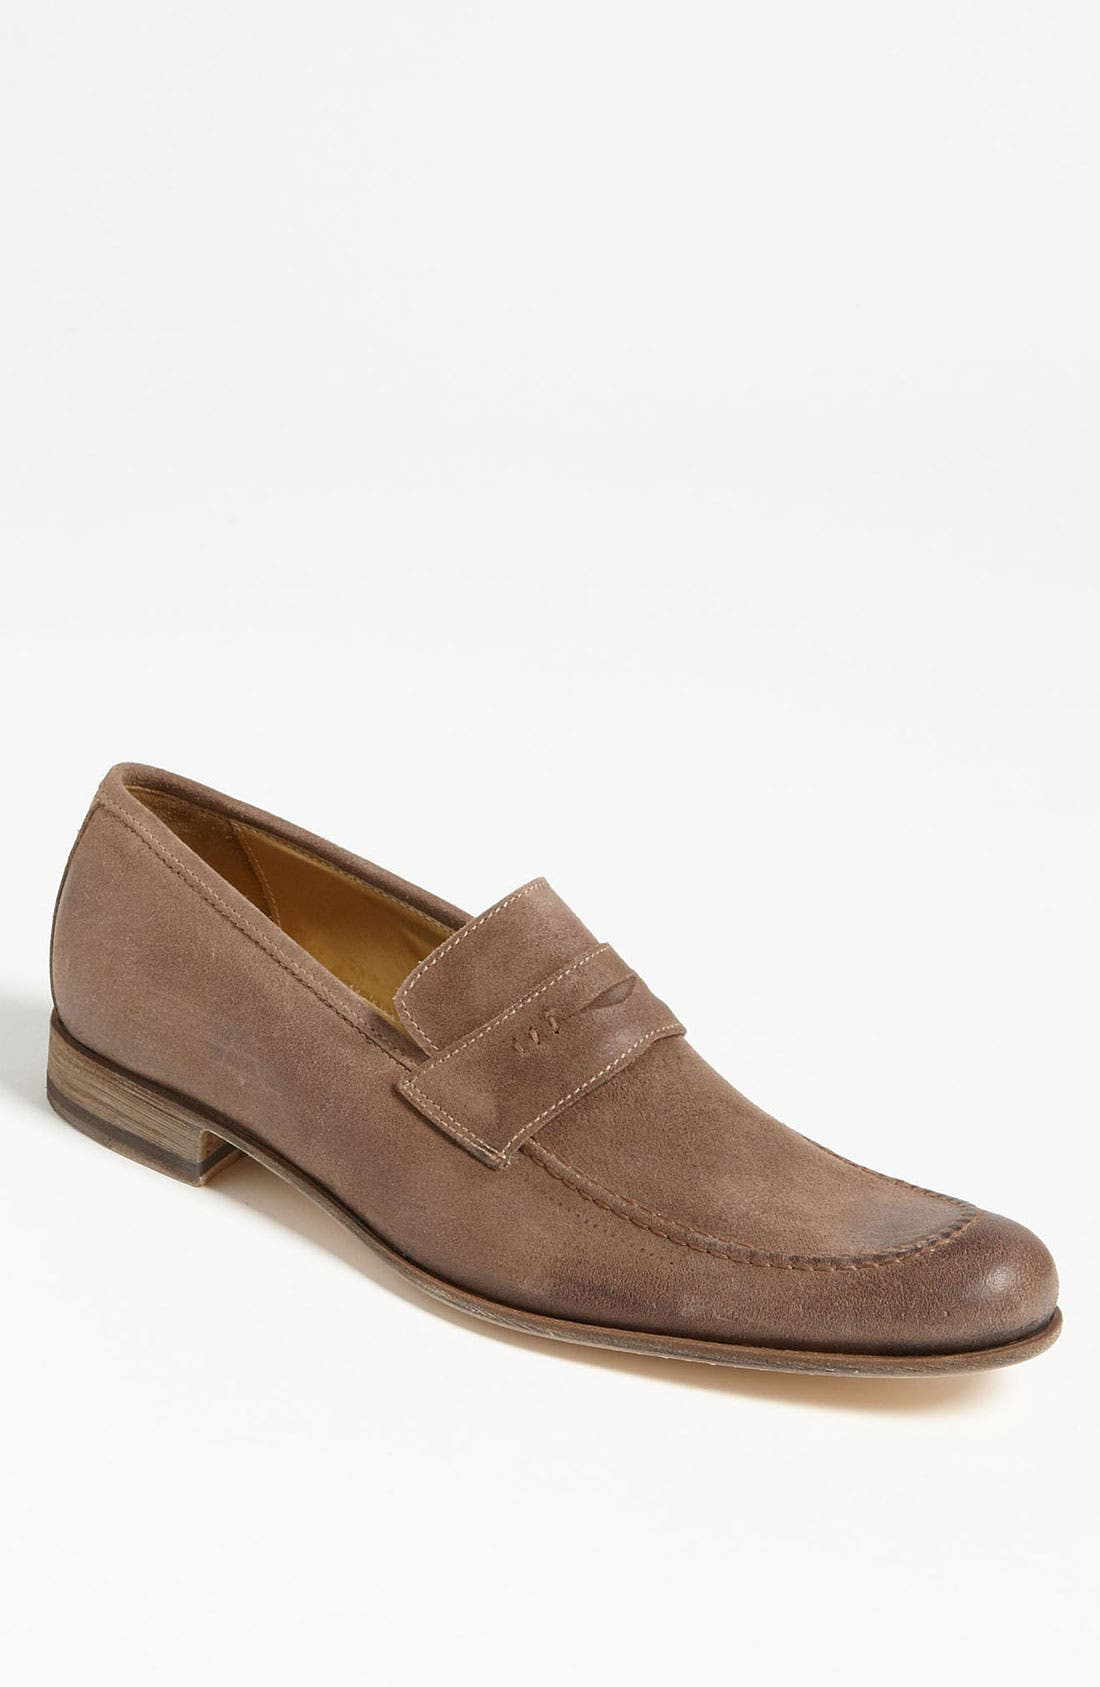 Alternate Image 1 Selected - Billy Reid 'Gulch' Loafer